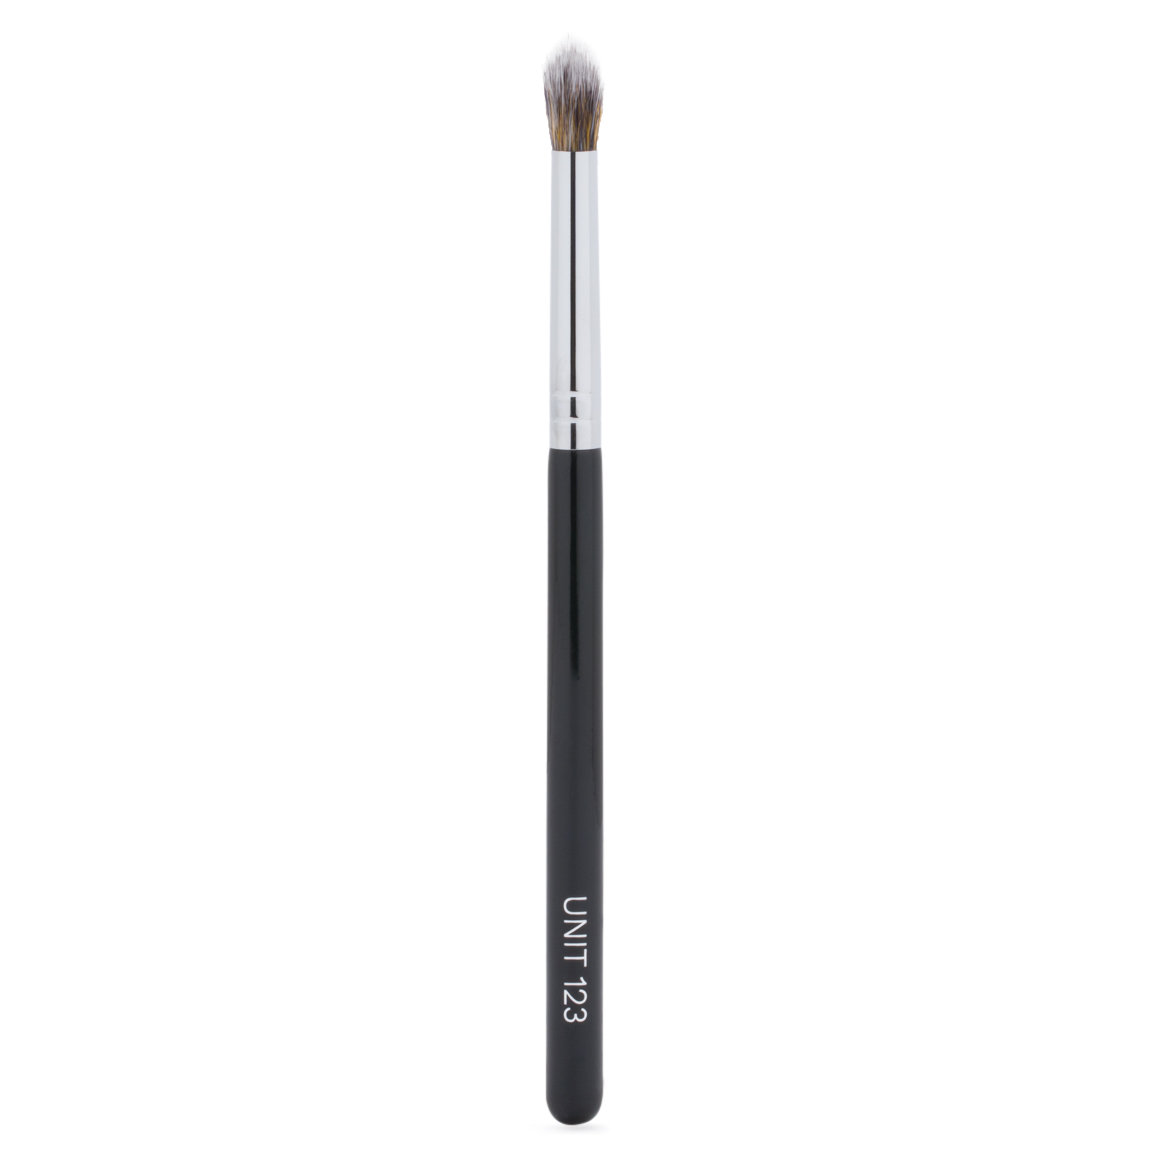 UNIT 123 Eye Brush